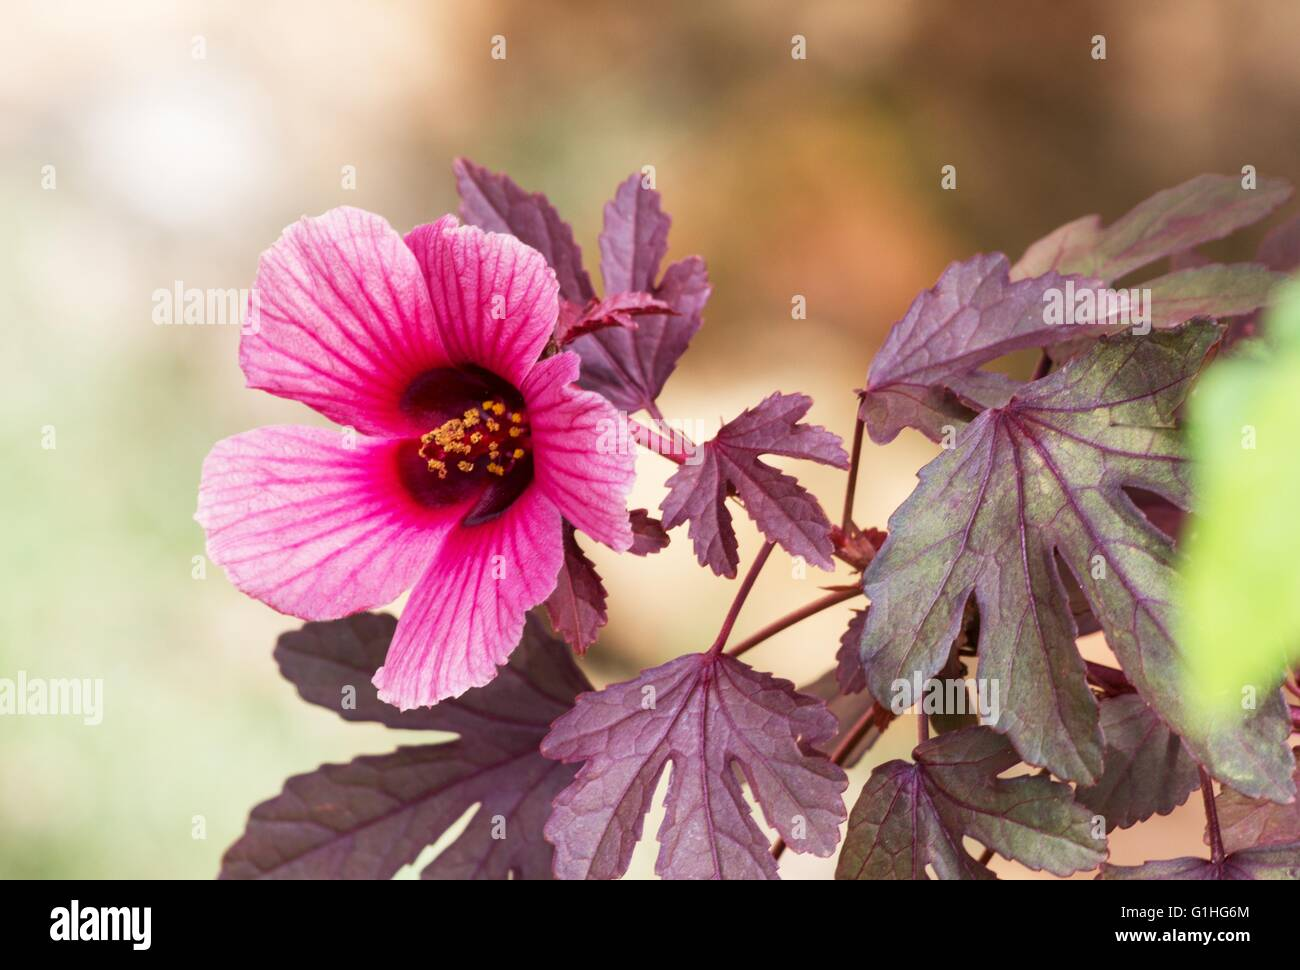 Buds of hibiscus flower stock photos buds of hibiscus flower stock roselle hibiscus sabdariffa plant and flower stock image izmirmasajfo